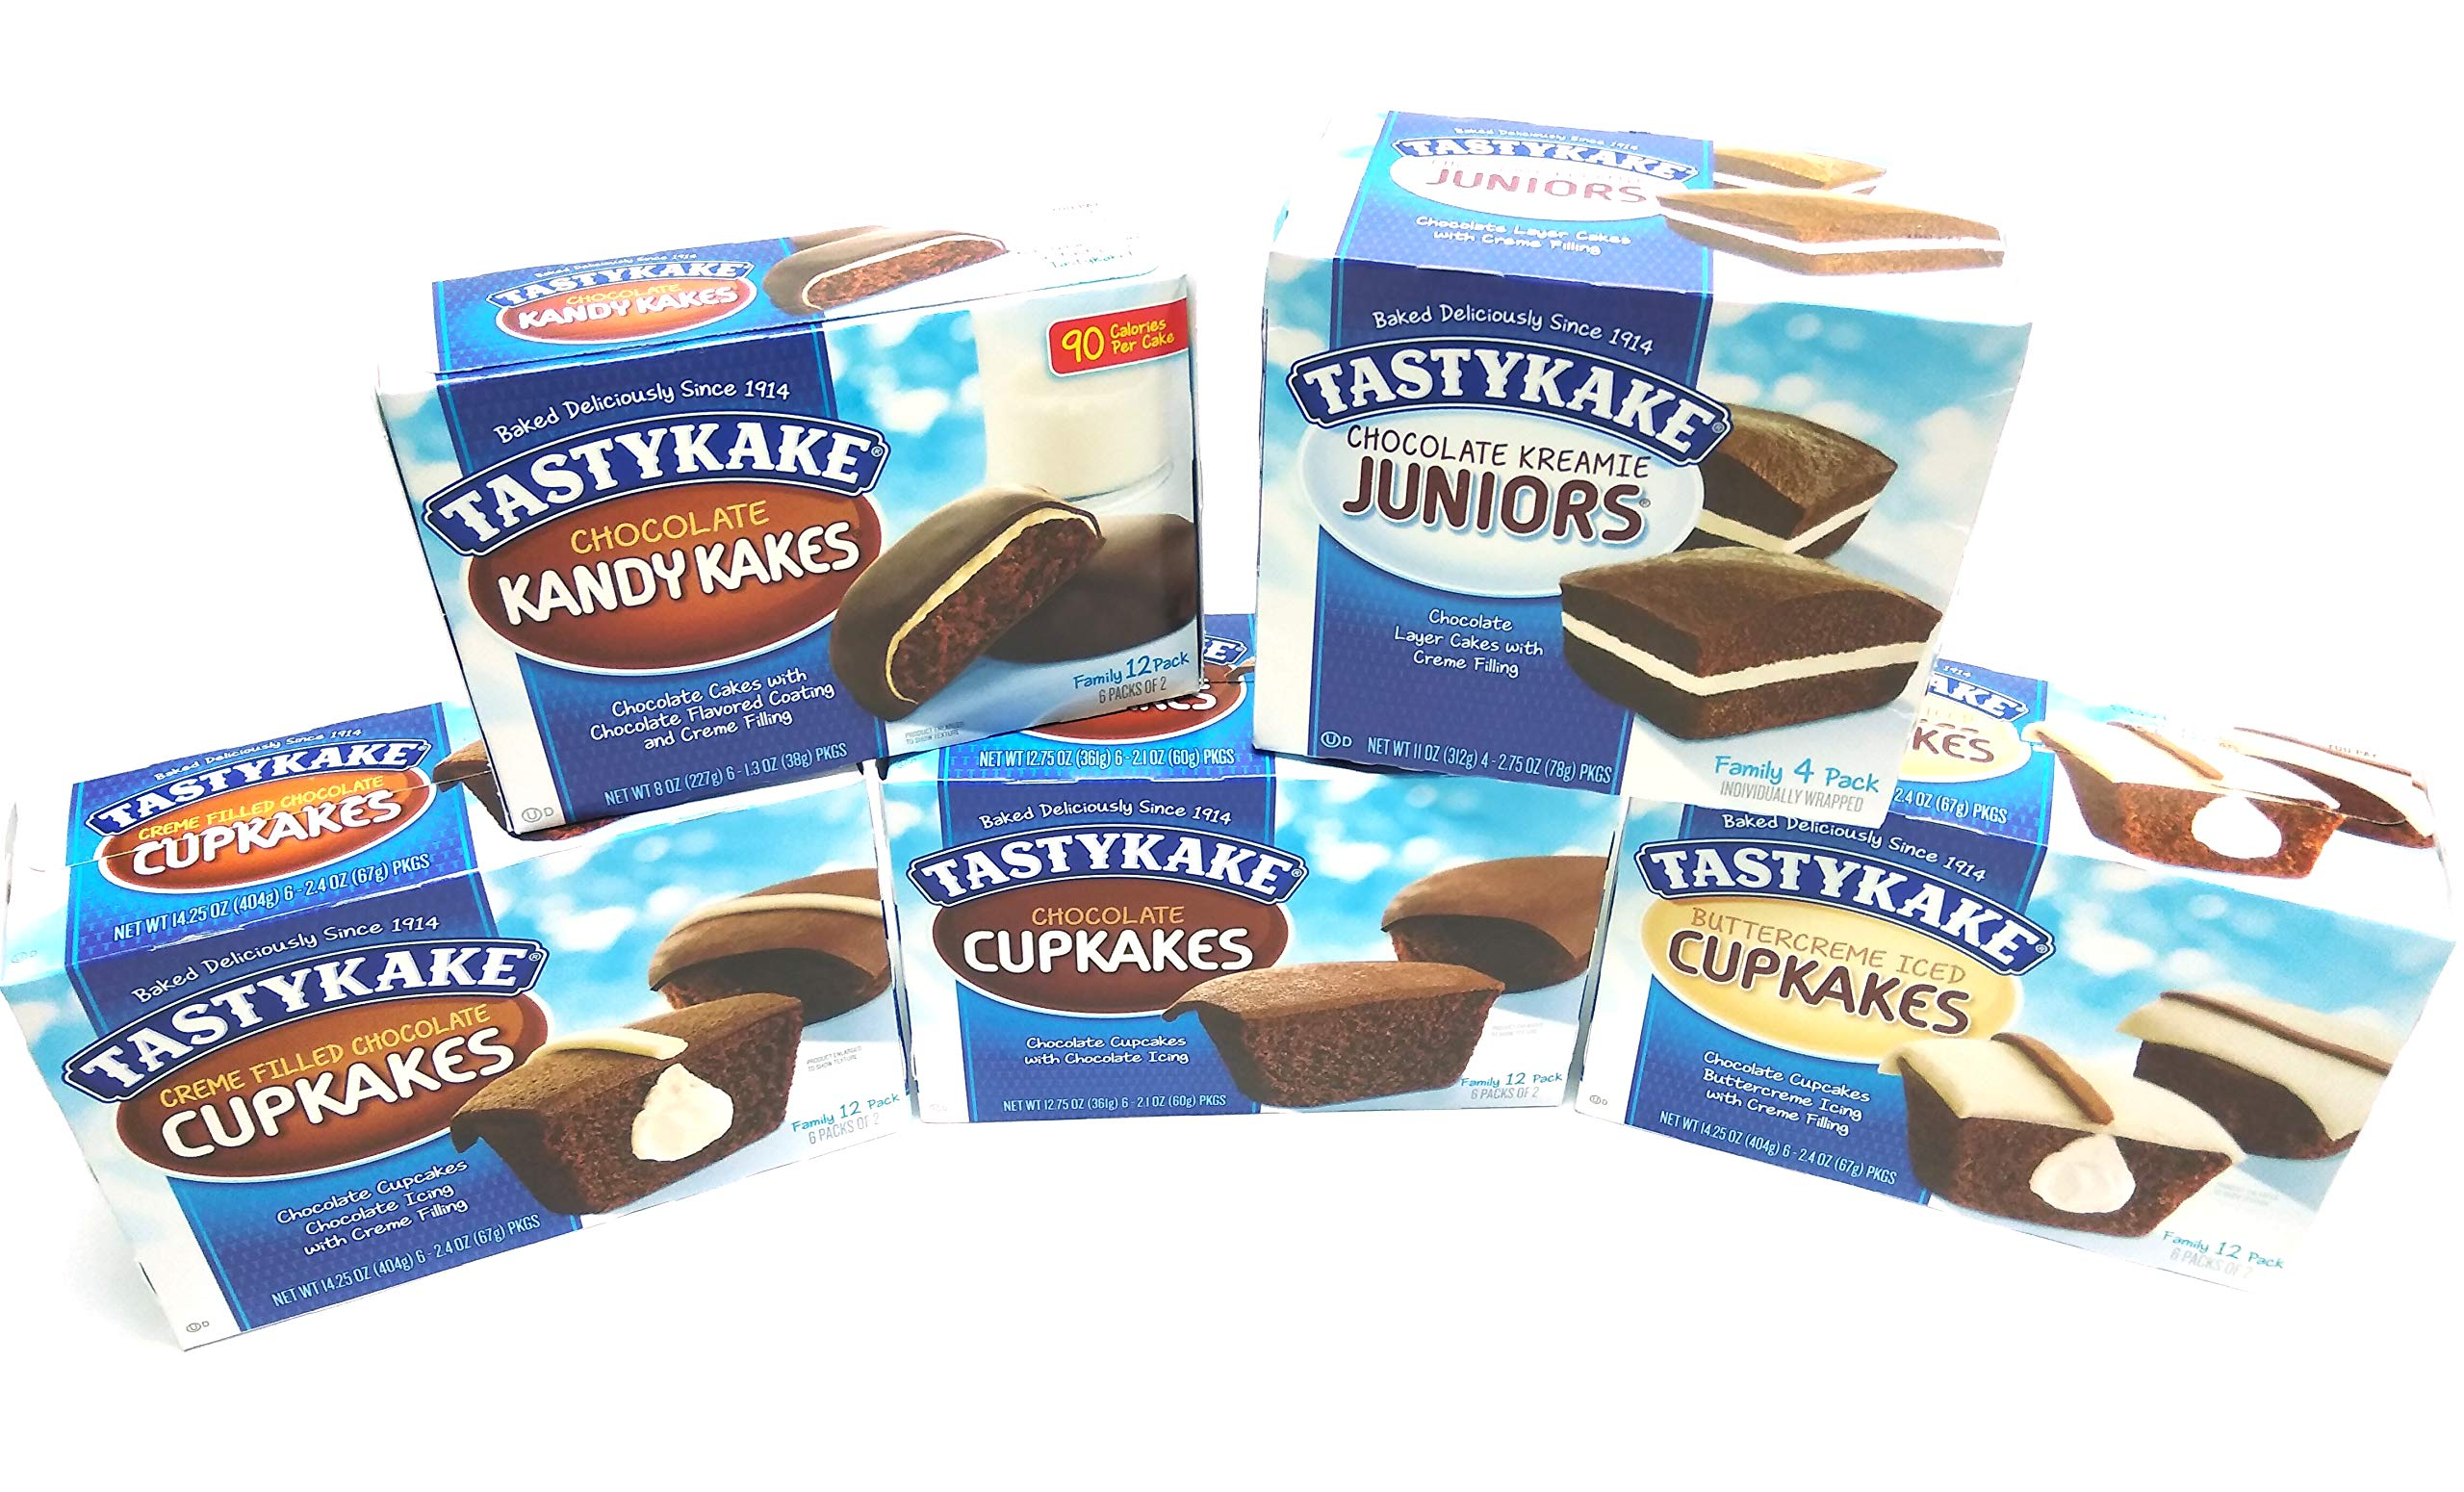 Tastykake Ultimate Chocolate Lovers Assortment | 5 Boxes Snack Cakes | Chocolate Cupcakes, Creme Filled Cupkakes, Buttercreme Iced Cake, Chocolate Kandy Kakes & Kreamie Juniors ... by Tastykake